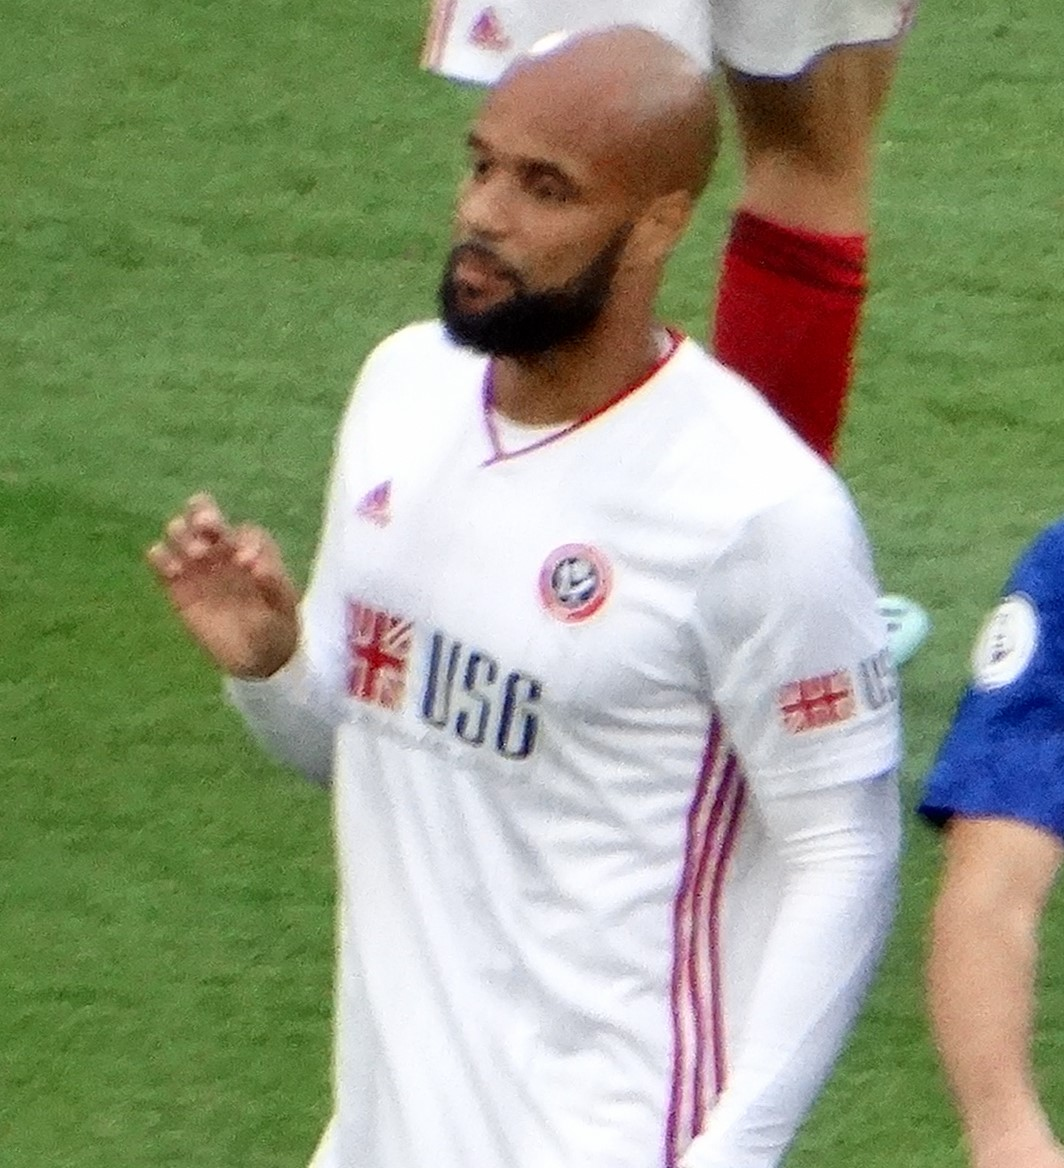 David McGoldrick cropped